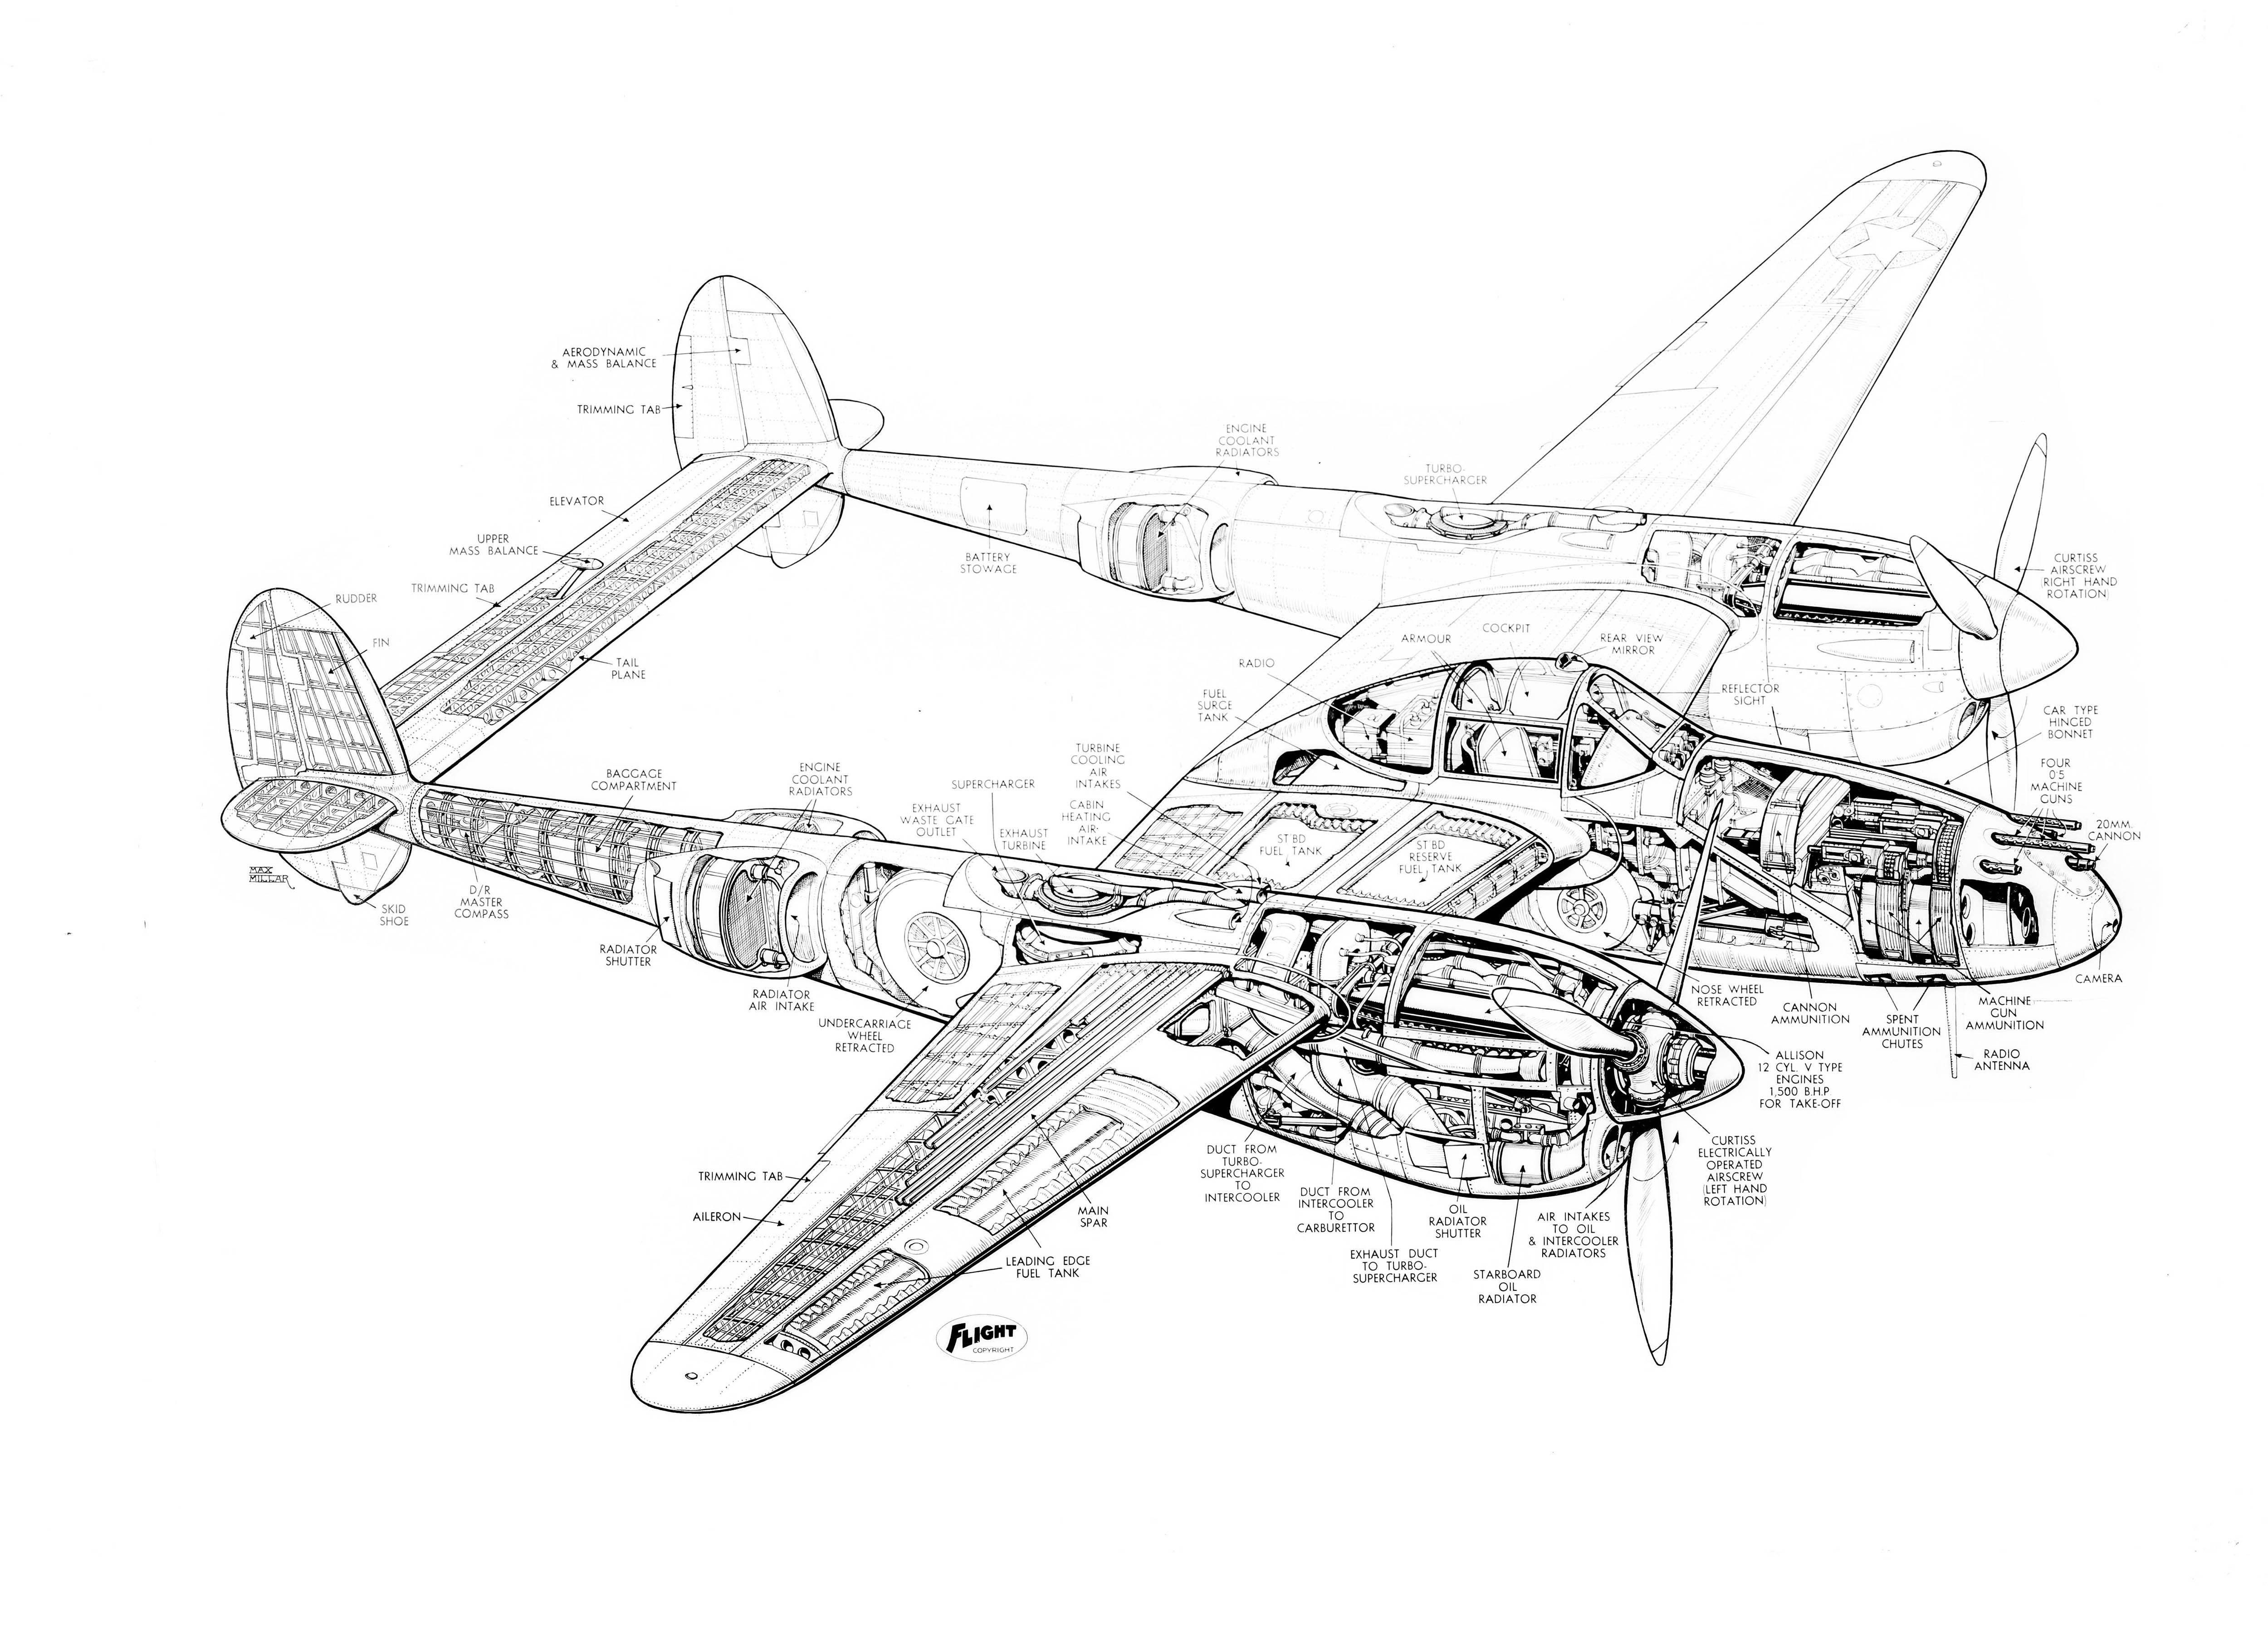 Lockheed P 38 Lightning Cutaway Drawing 5 000 3 596